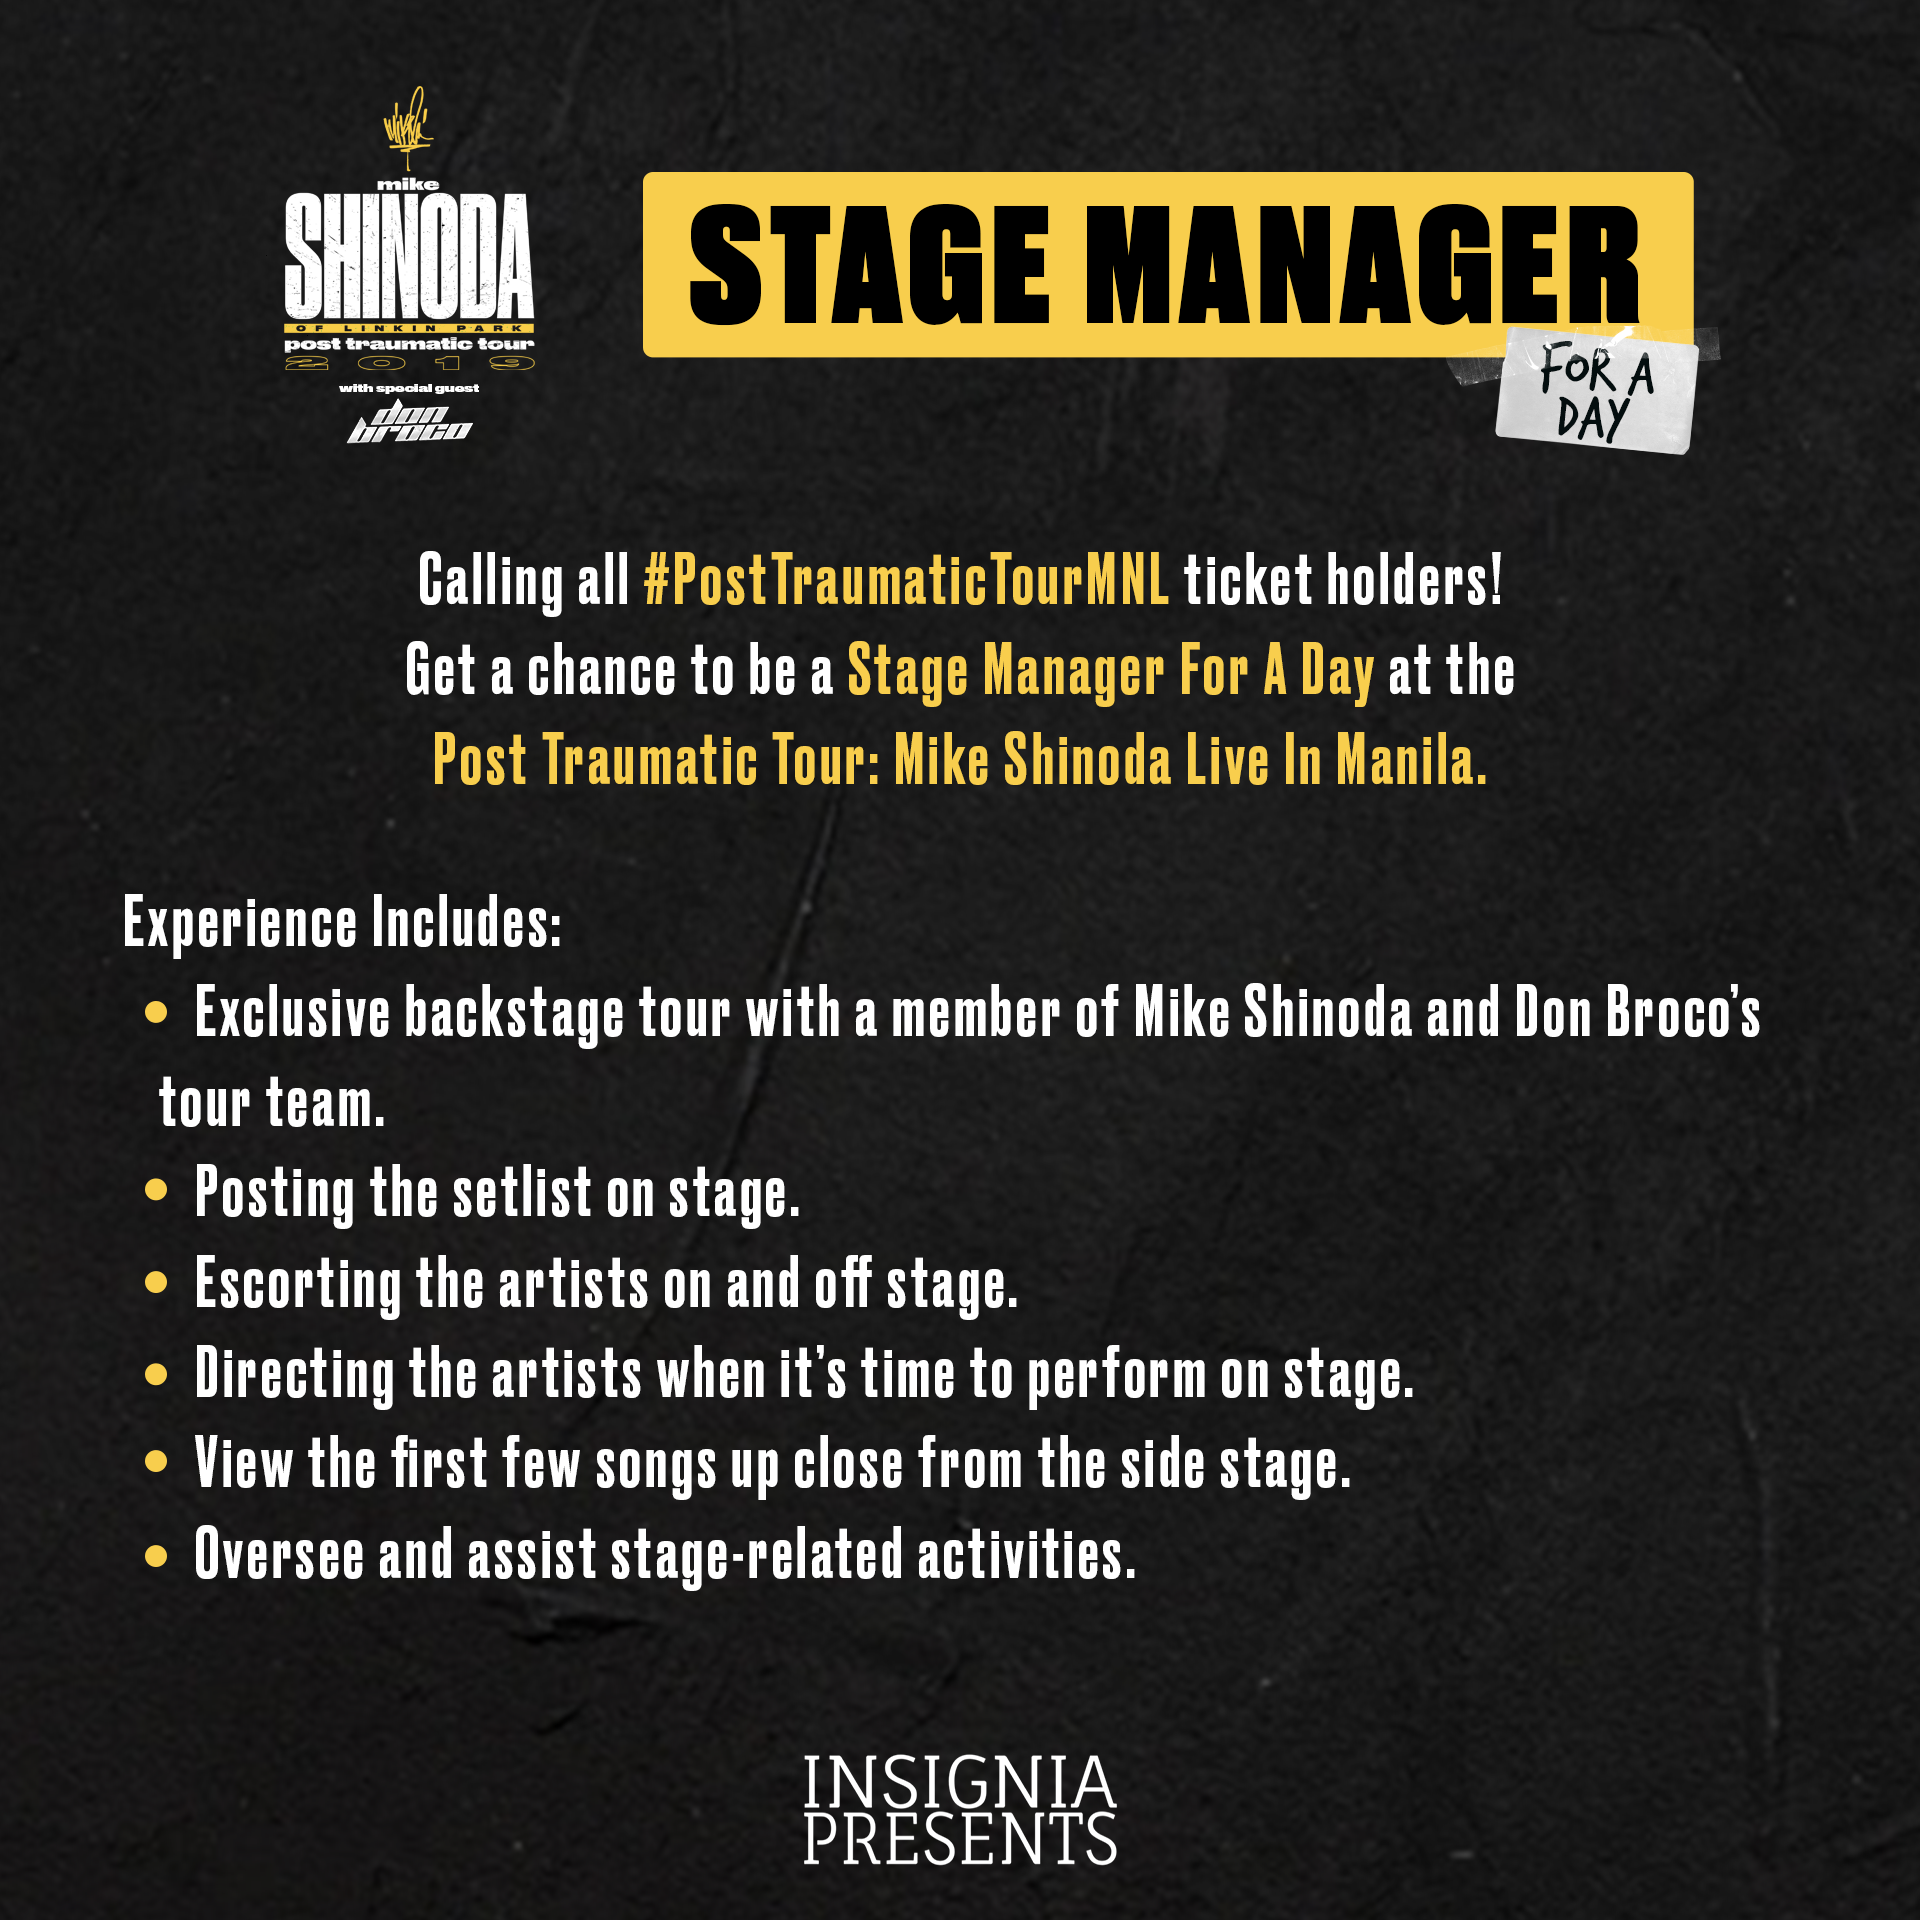 StageManagerForADay-Description-MikeShinoda-09.06.19-NewFrontierTheater-ManilaPhilippines-v4.png